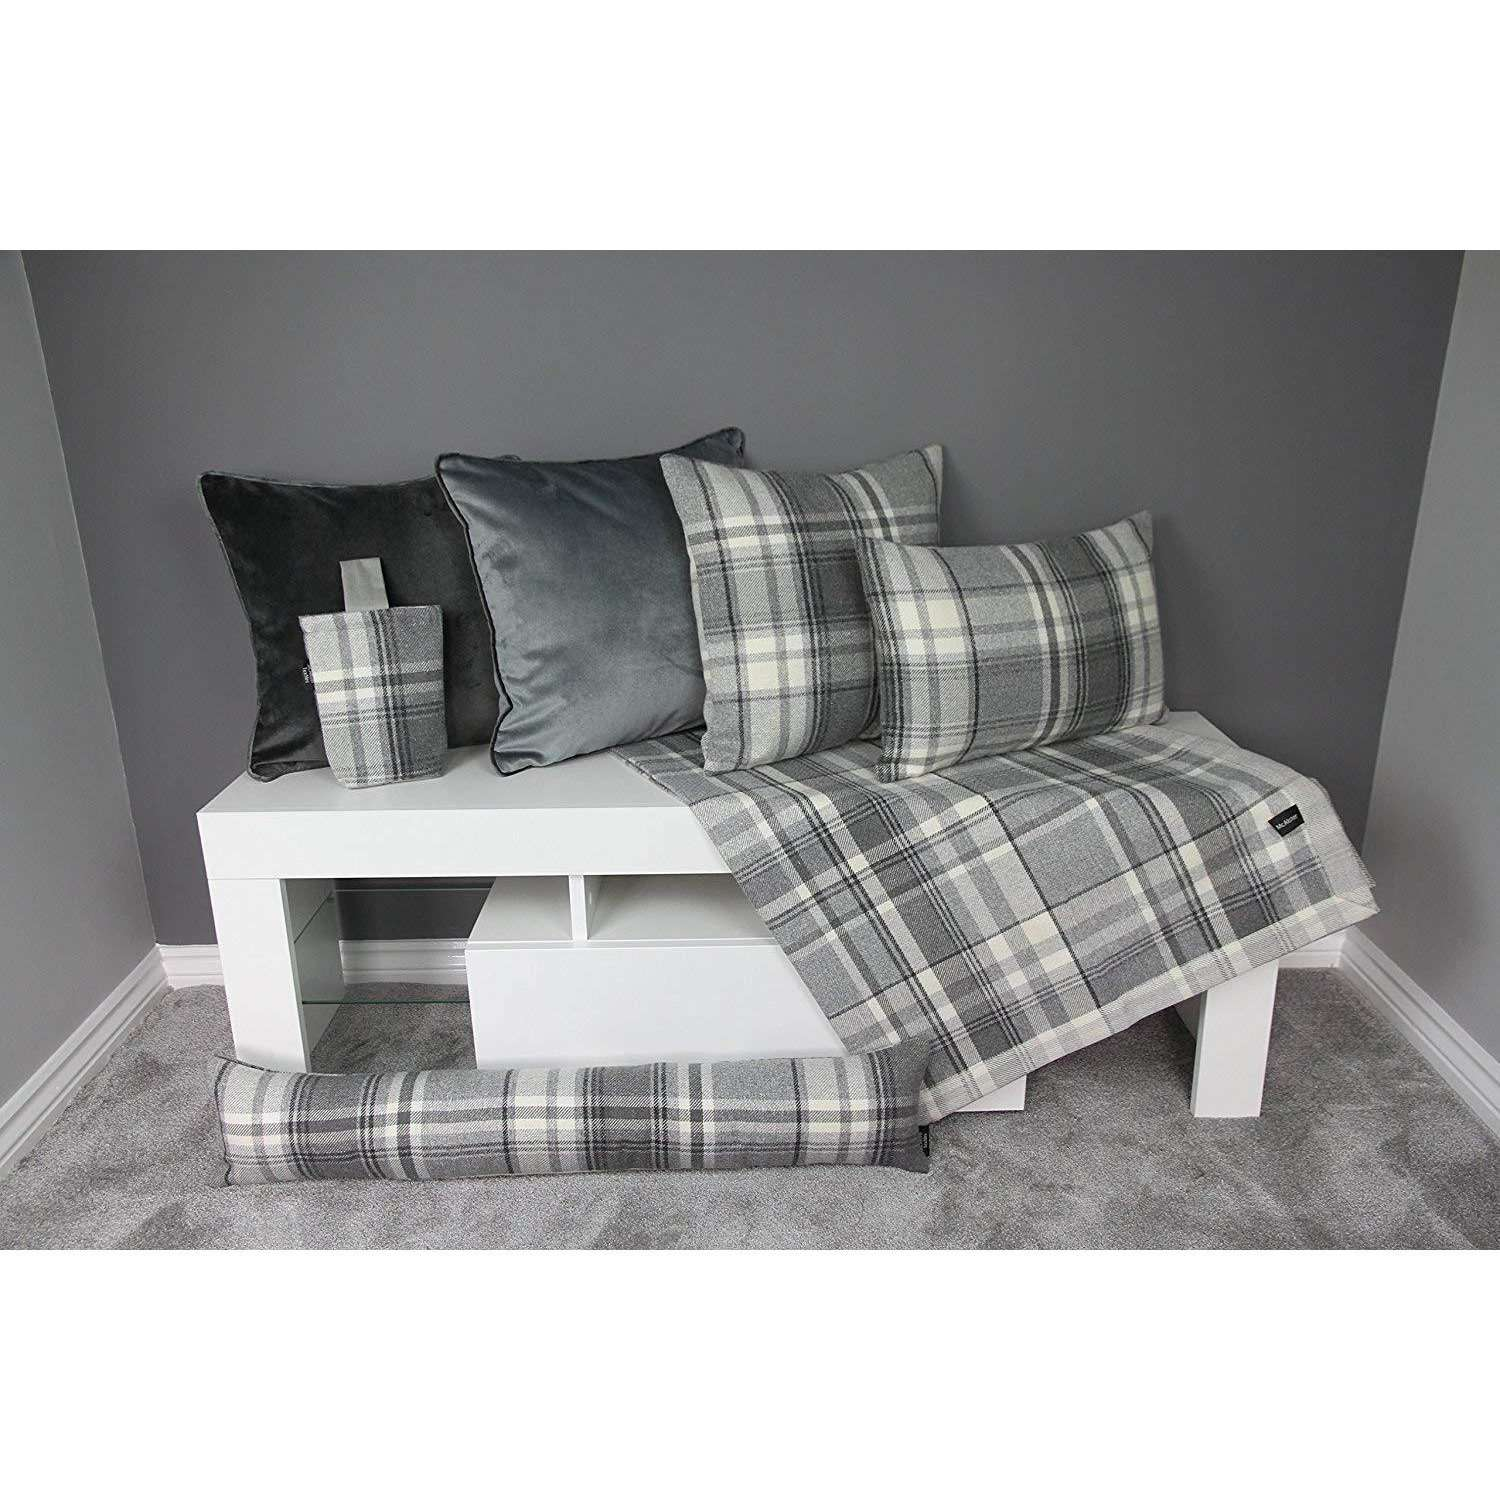 McAlister Textiles Deluxe Tartan Charcoal Grey Bed Pillow Large Boudoir Cushions